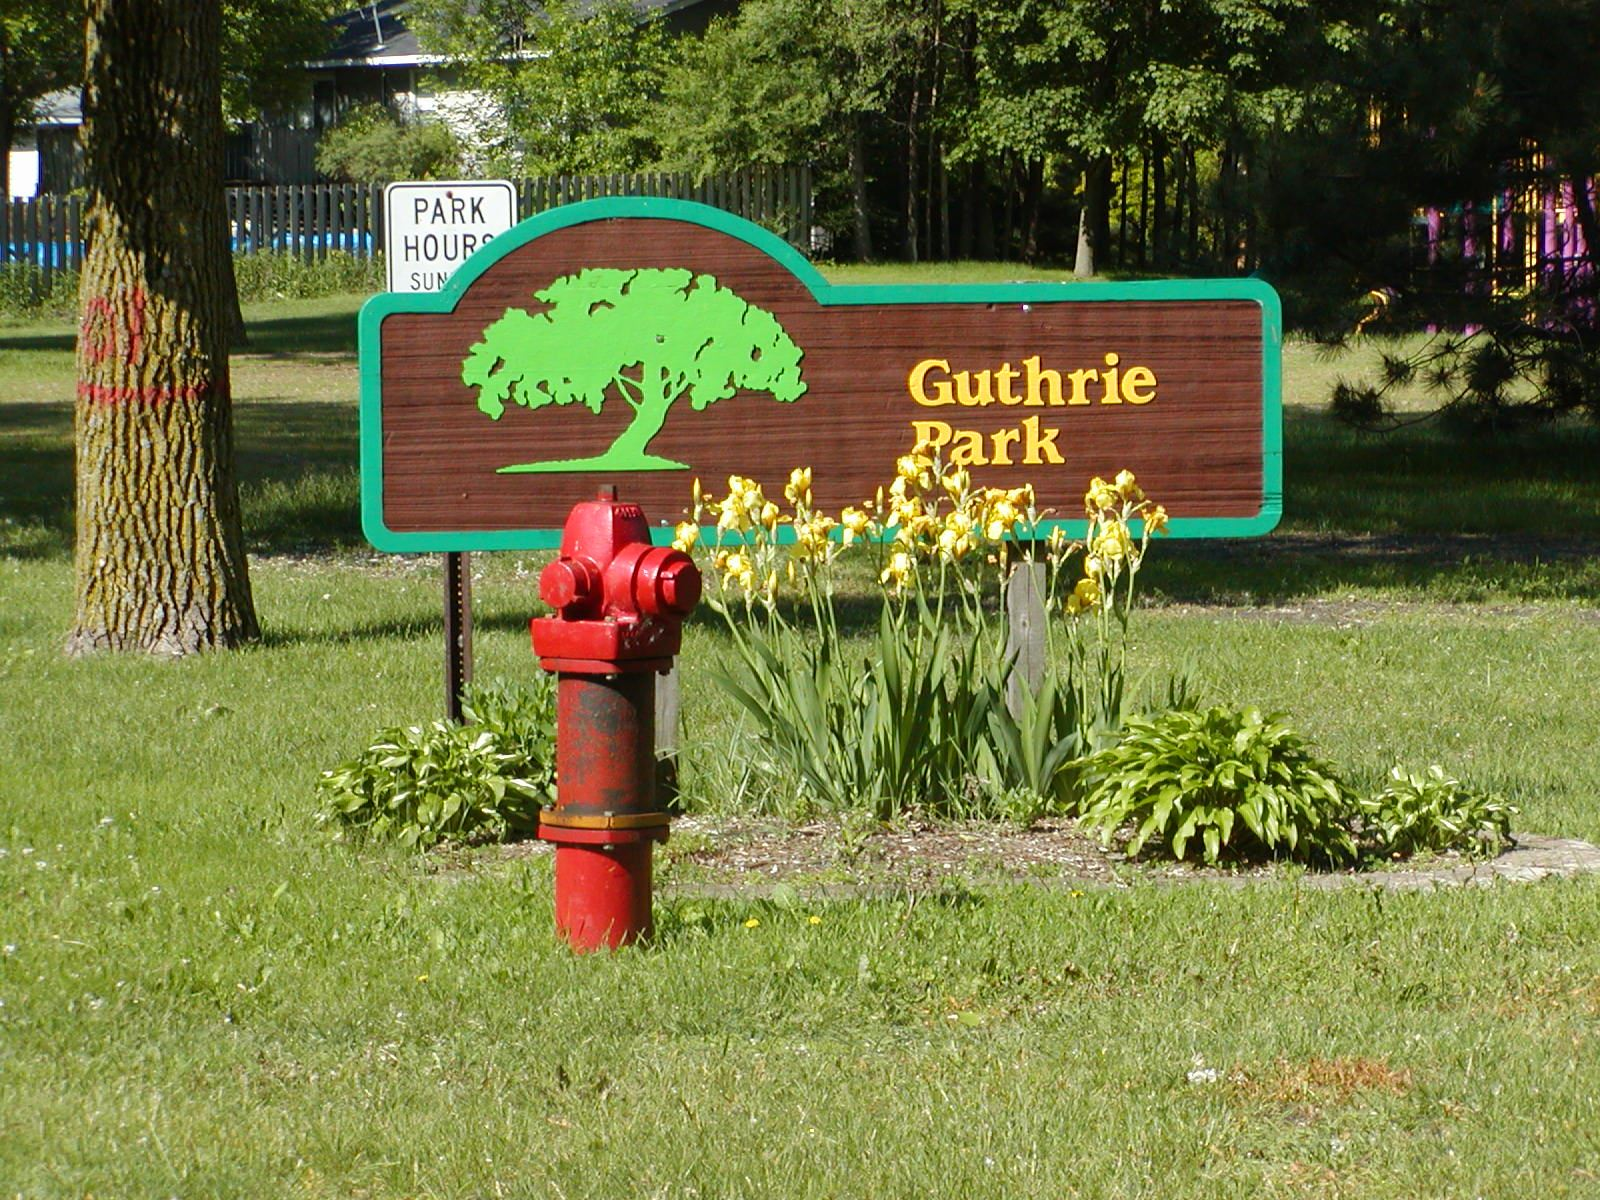 Image of Guthrie Park Sign